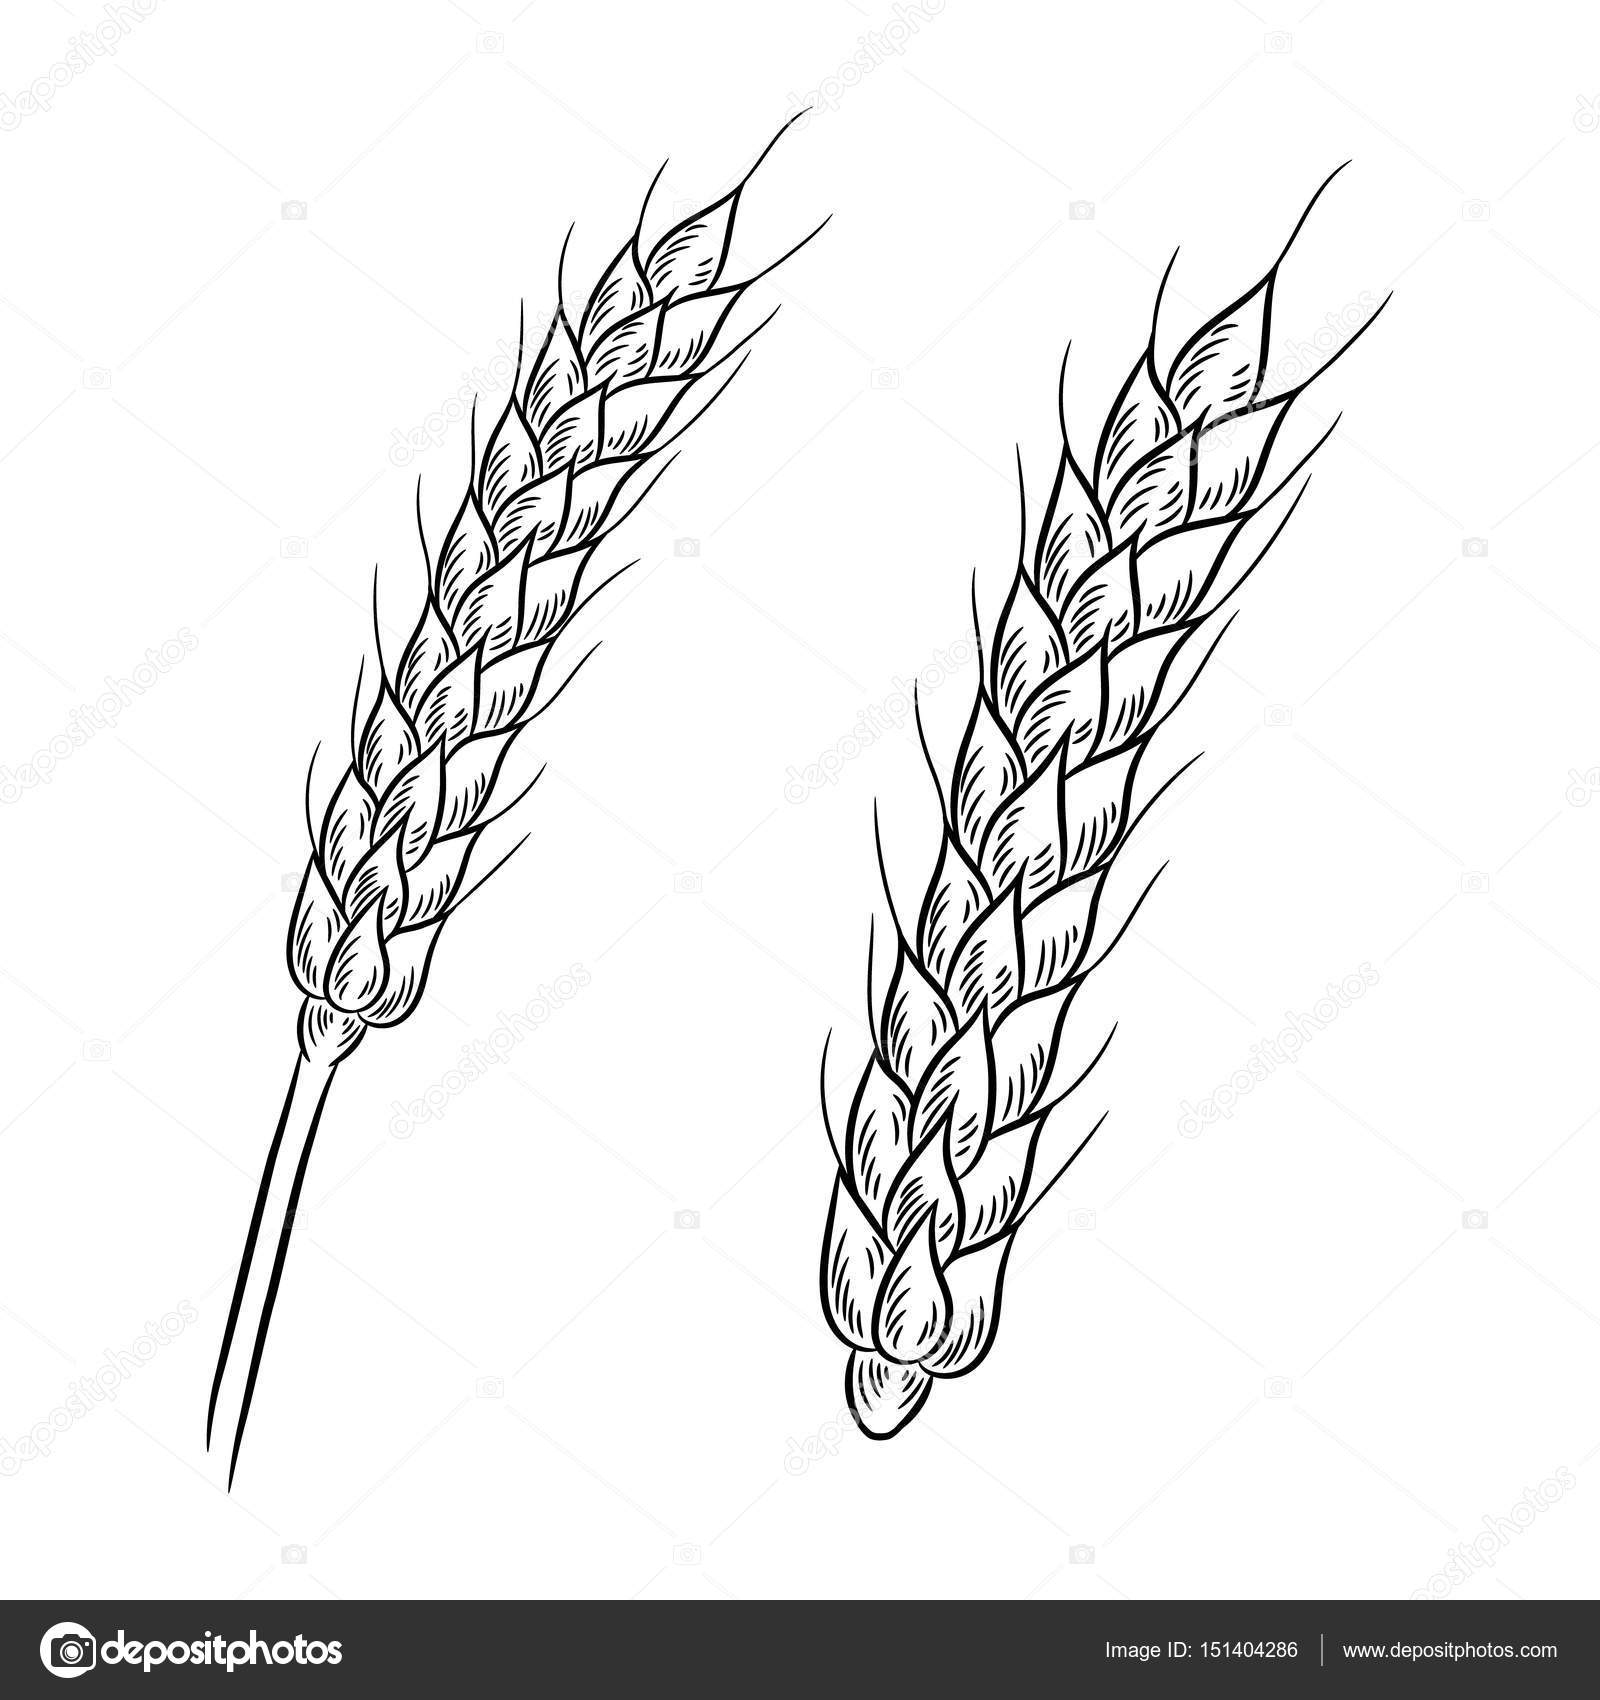 Wheat Drawing Isolated On White Background Stock Vector